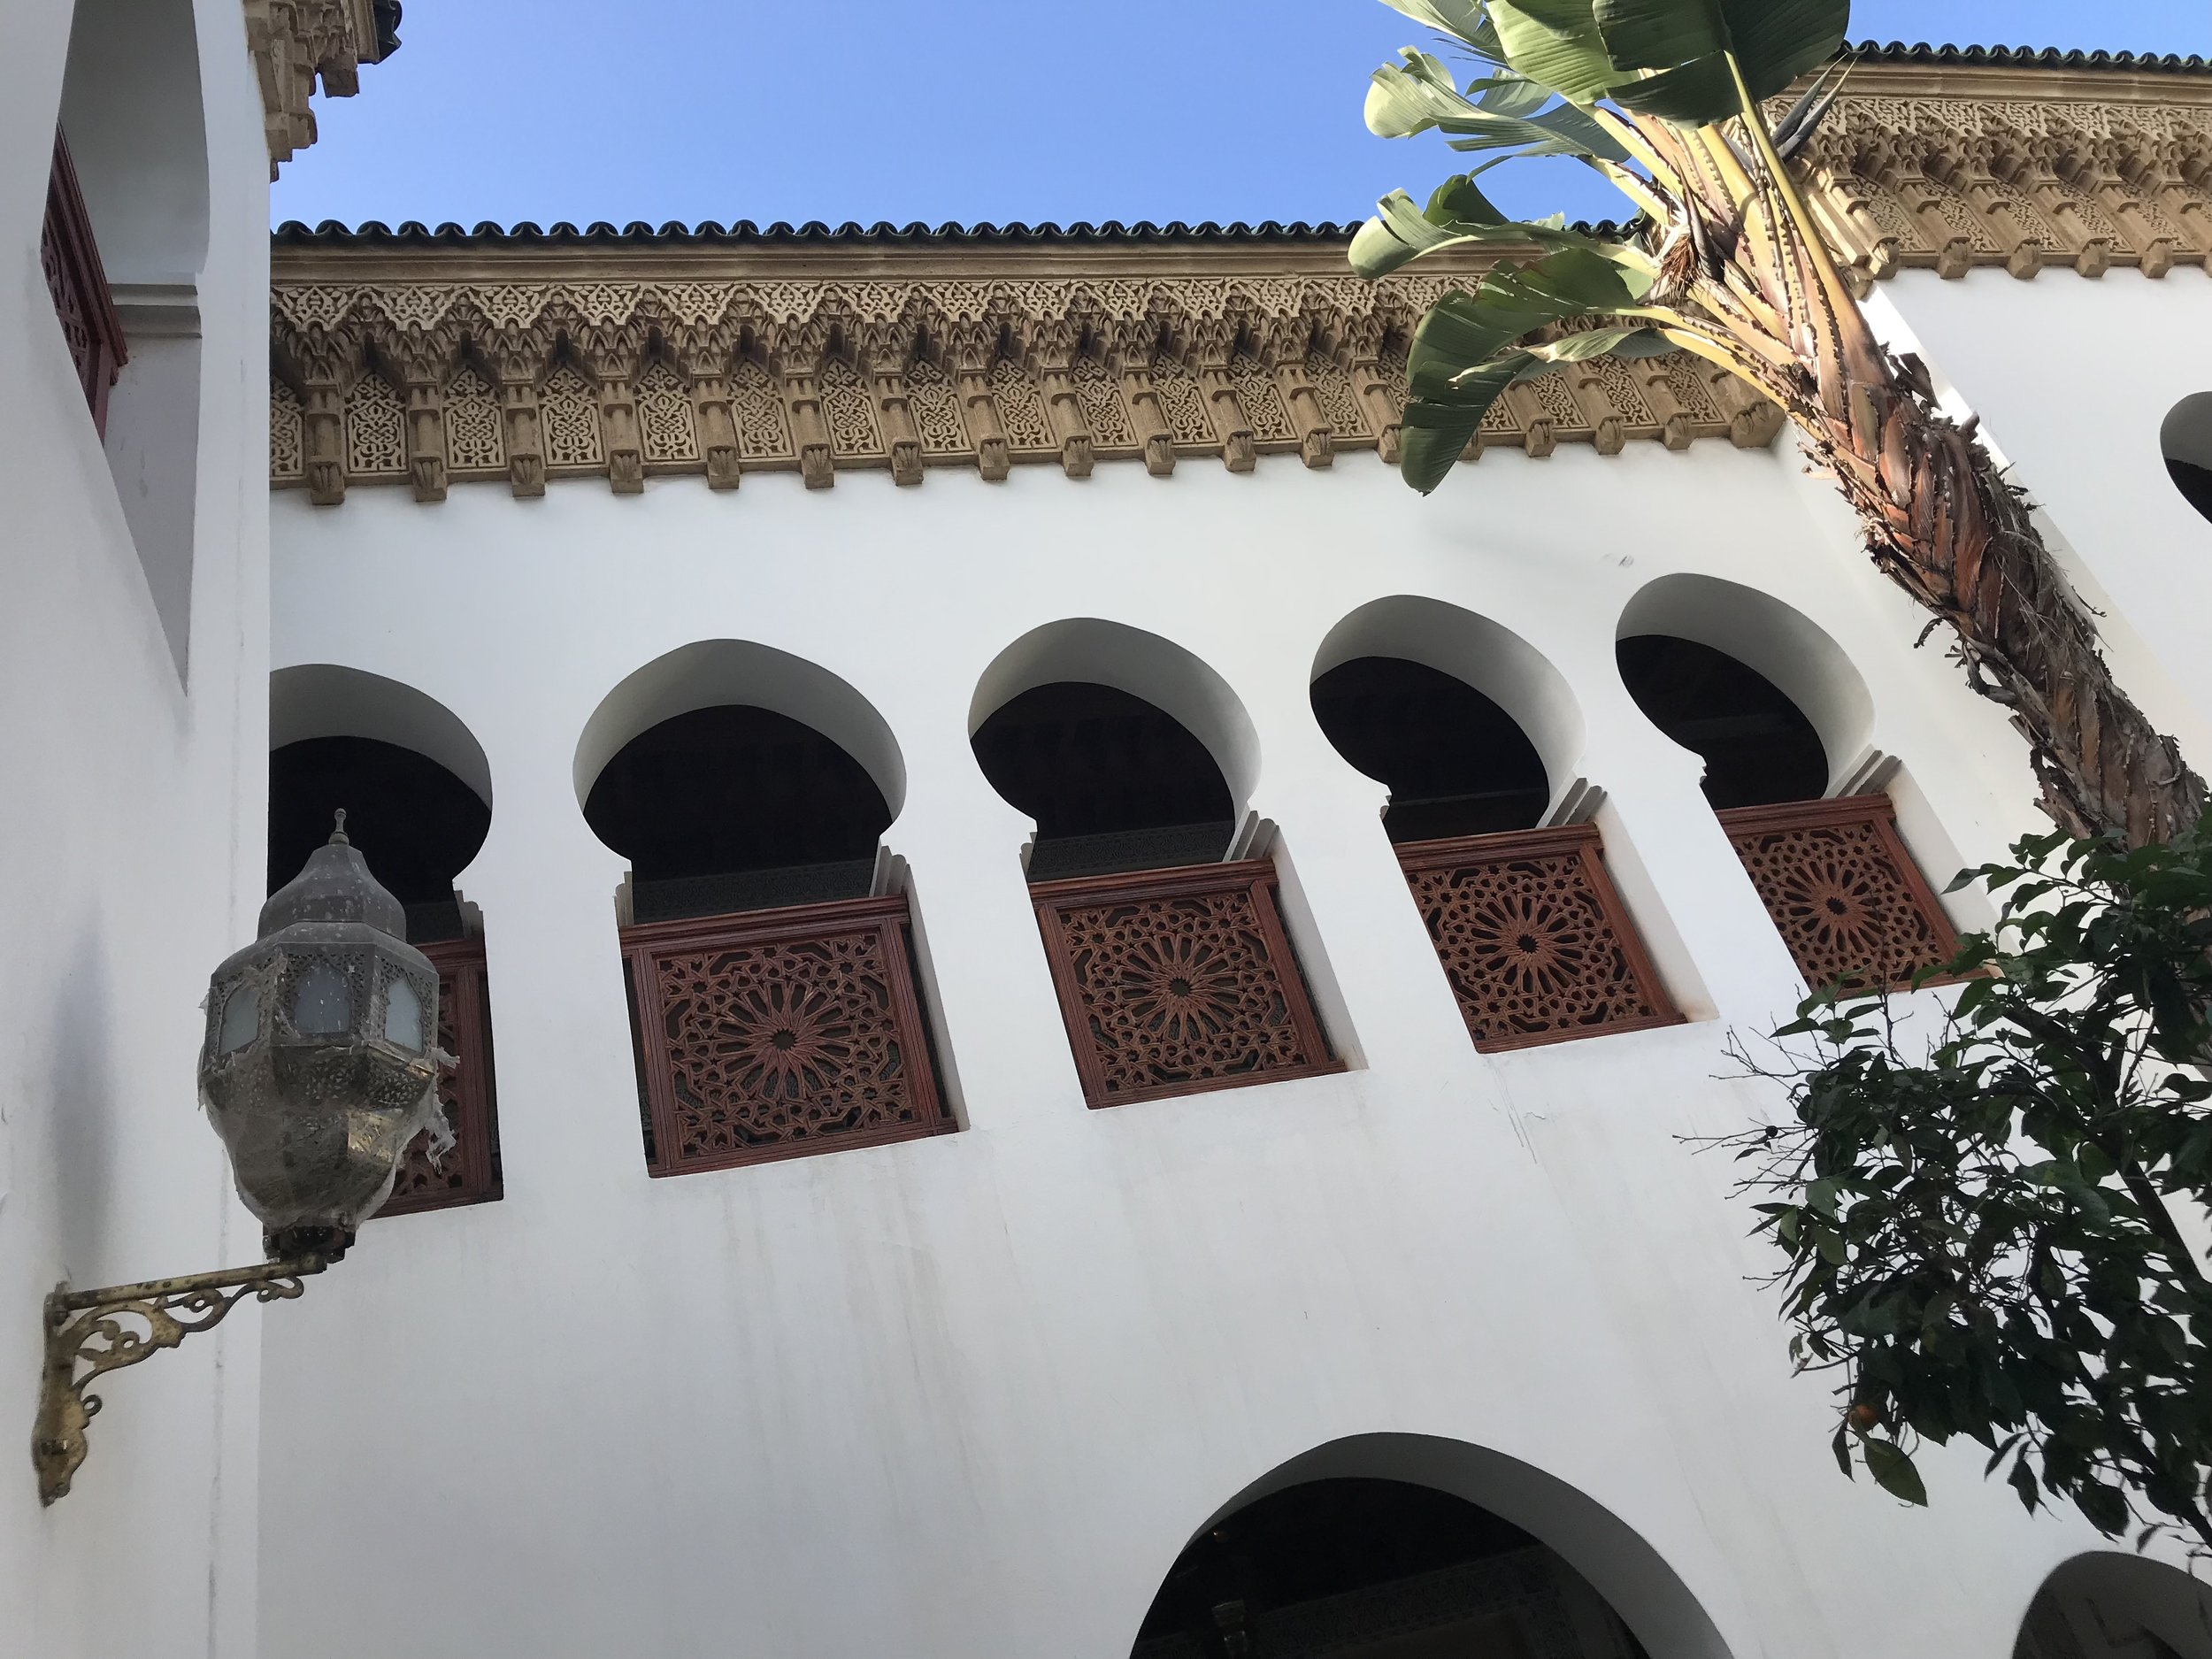 Courtyard, Islamic Center of Science in Rabat, Morocco  Photo provided by Gwendalyn Ryan '20